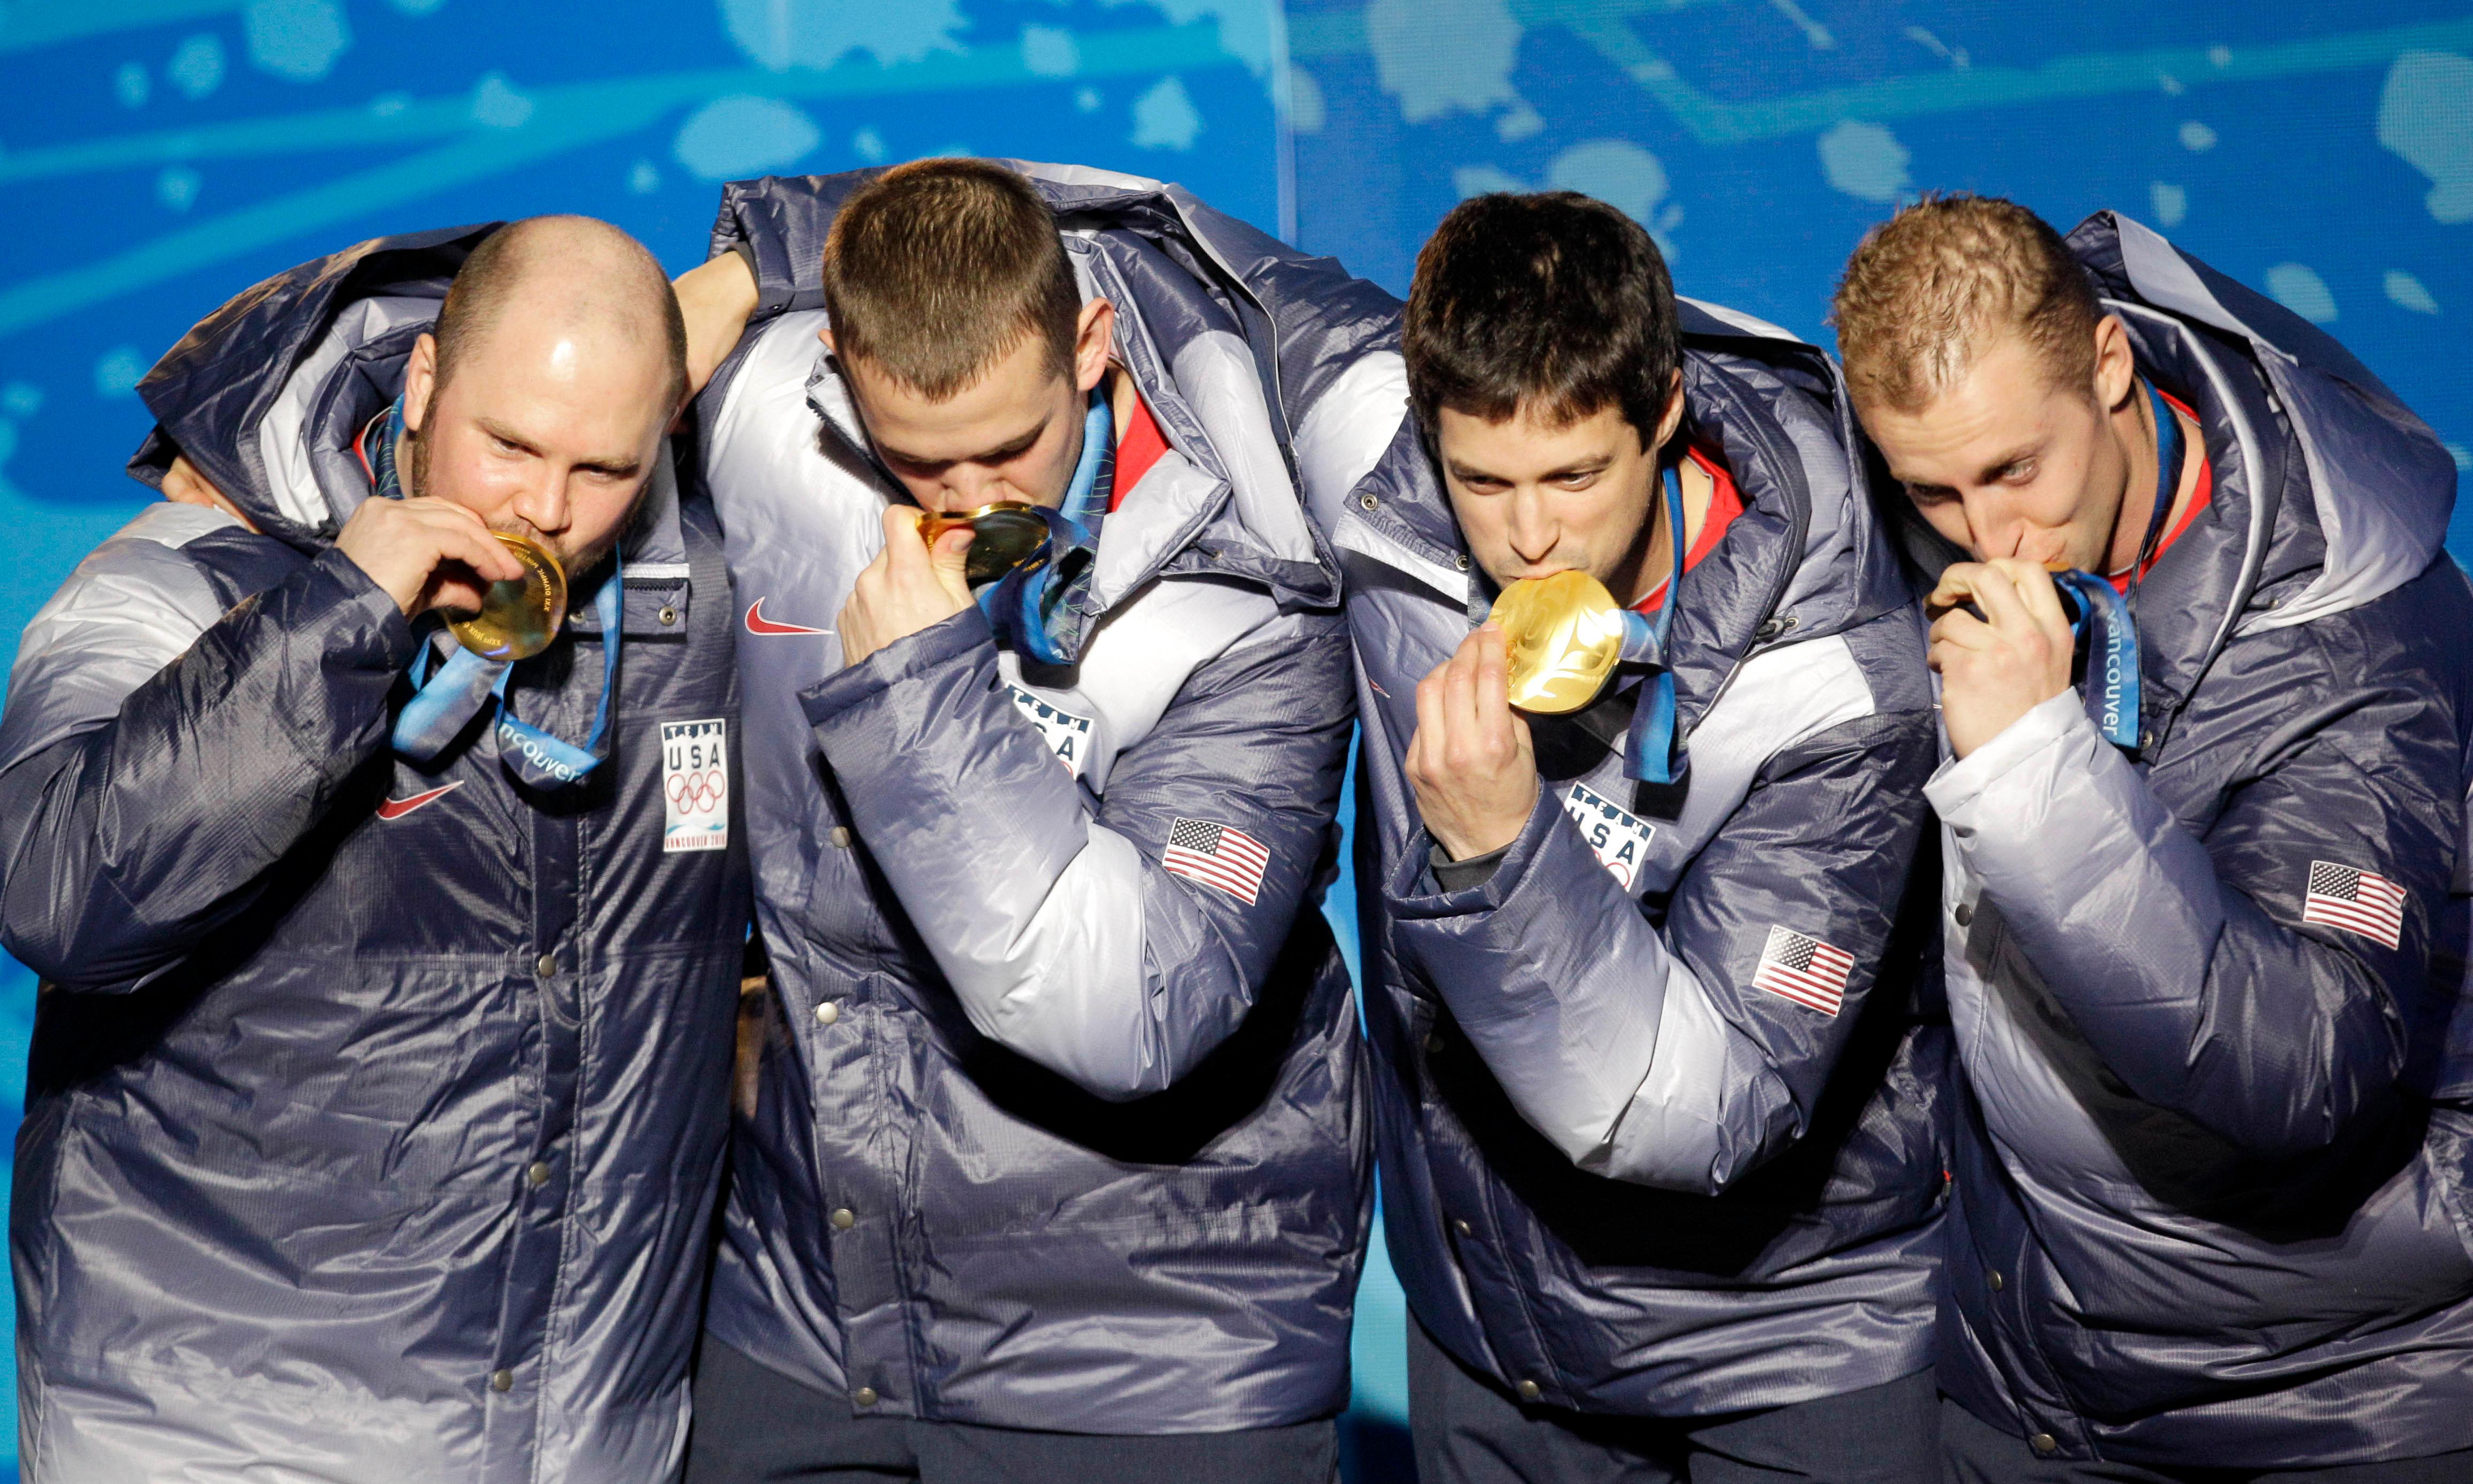 FILE - In this Feb. 27, 2010, file photo, from left, Steven Holcomb, Justin Olsen, Steve Mesler and Curtis Tomasevicz, of the United States, kiss their gold medasl in the men's four-man bobsled during the medal ceremony of the Vancouver 2010 Olympics in Whistler, British Columbia.  Holcomb, the longtime U.S. bobsledding star who drove to three Olympic medals after beating a disease that nearly robbed him of his eyesight, was found dead in Lake Placid, N.Y., on Saturday, May 6, 2017.  He was 37.(AP Photo/Jin-man Lee, File)